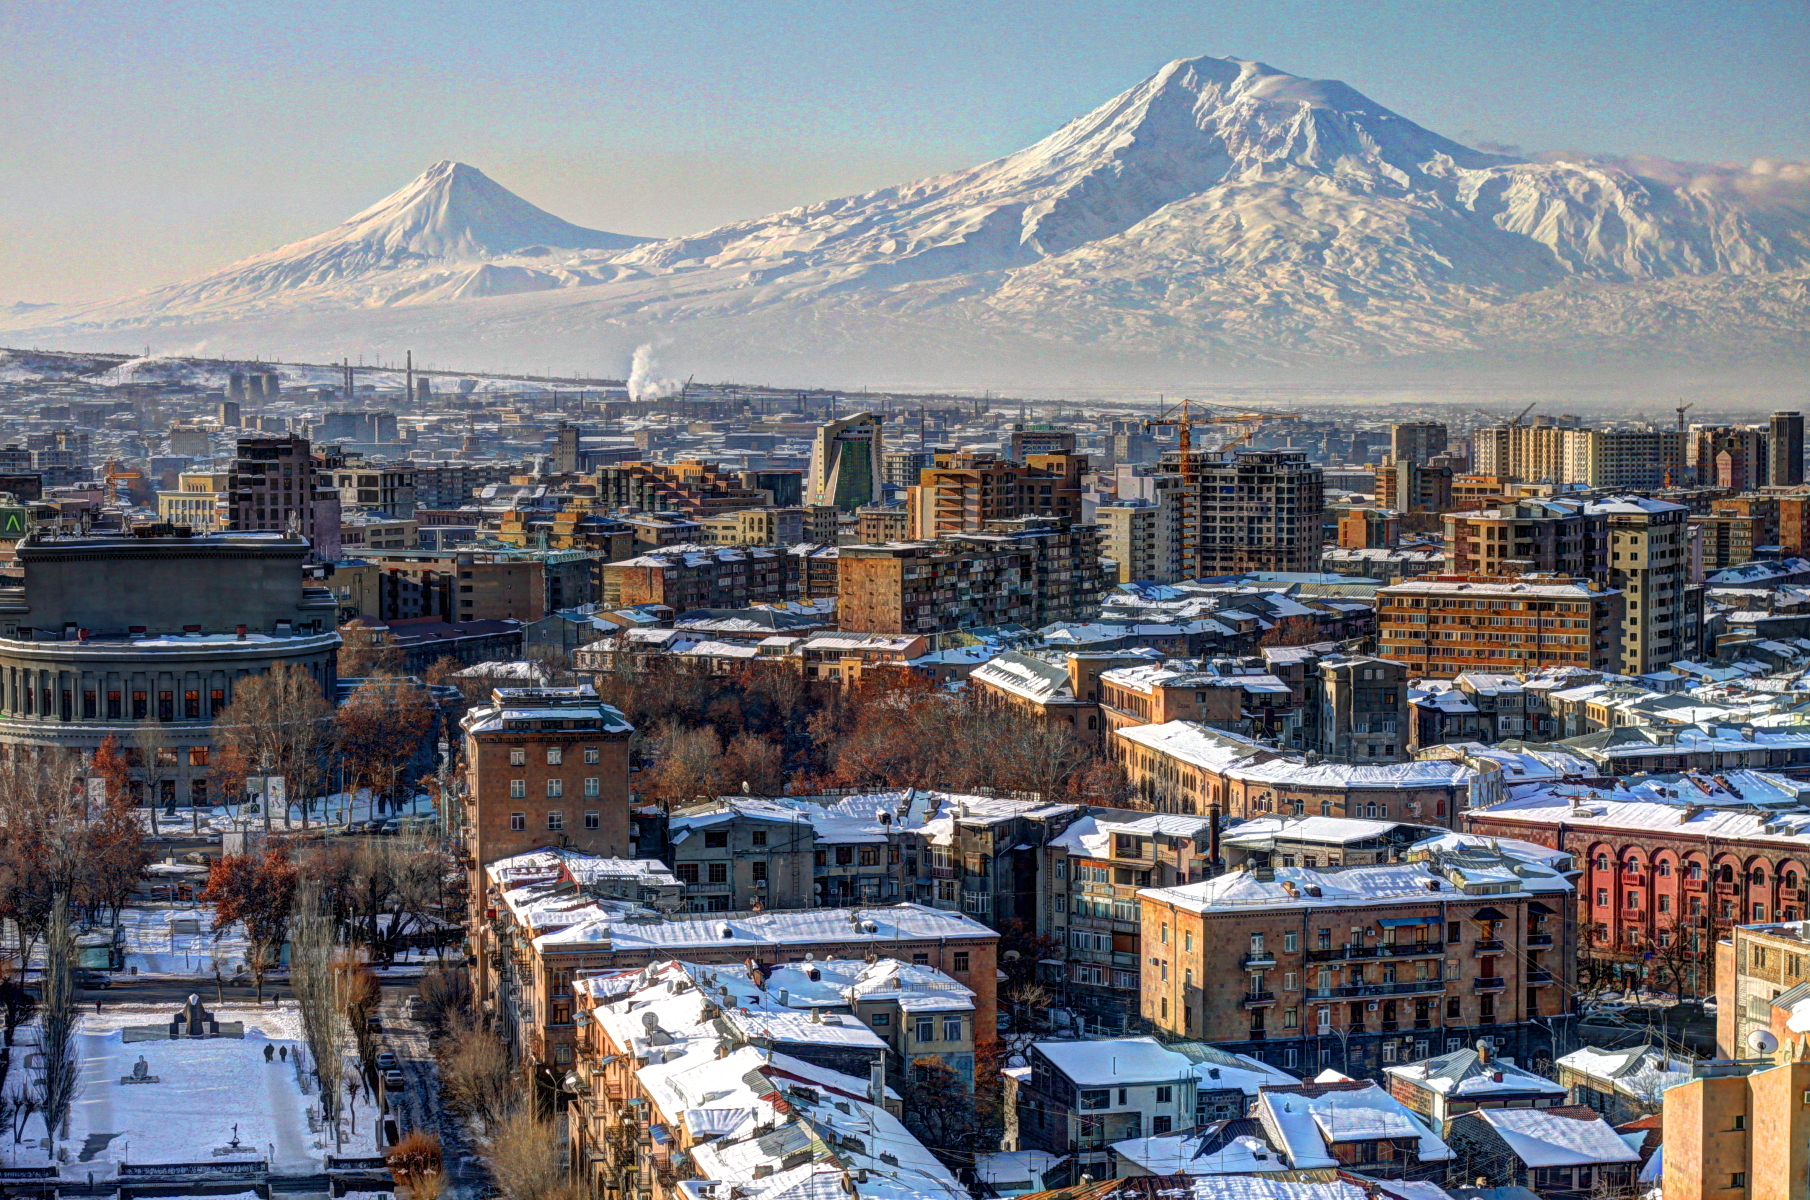 A winter view of Yerevan, Armenia, with the backdrop of Masis (Mount Ararat).